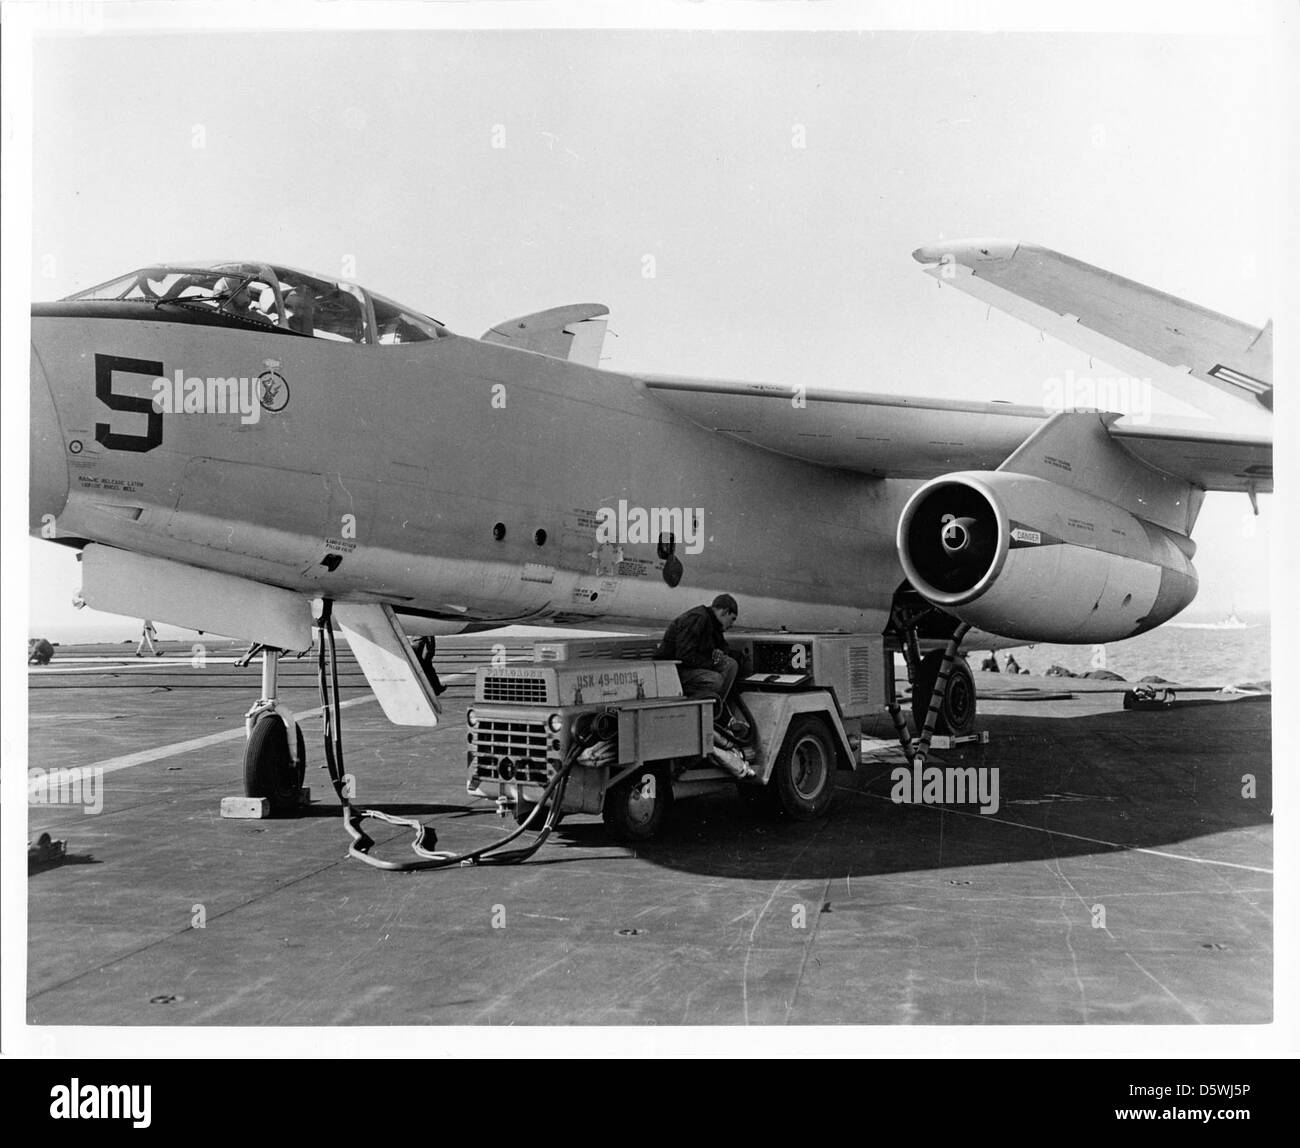 Douglas A3D-1 'Skywarrior' of Heavy Attack Squadron one (VAH-1) 'Smokin Tigers' aboard the USS FORRESTAL - Stock Image